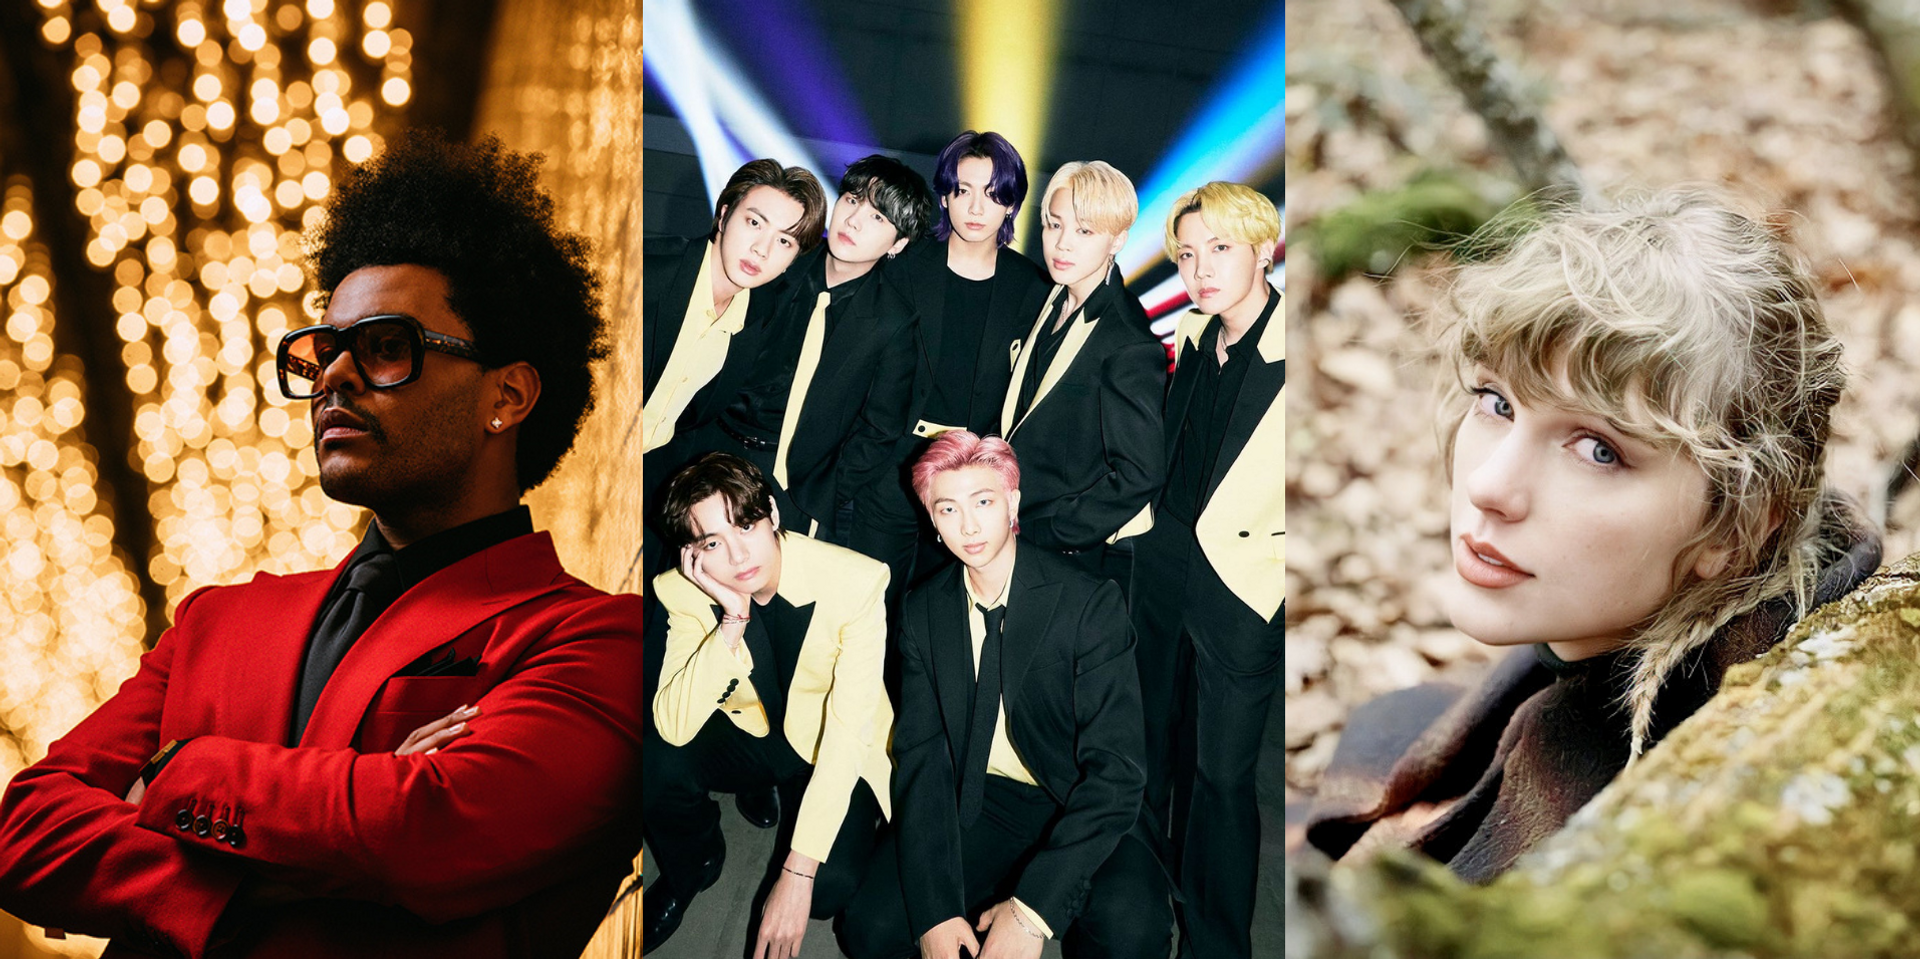 Here are the winners of the 2021 Billboard Music Awards – BTS, Taylor Swift, The Weeknd, and more